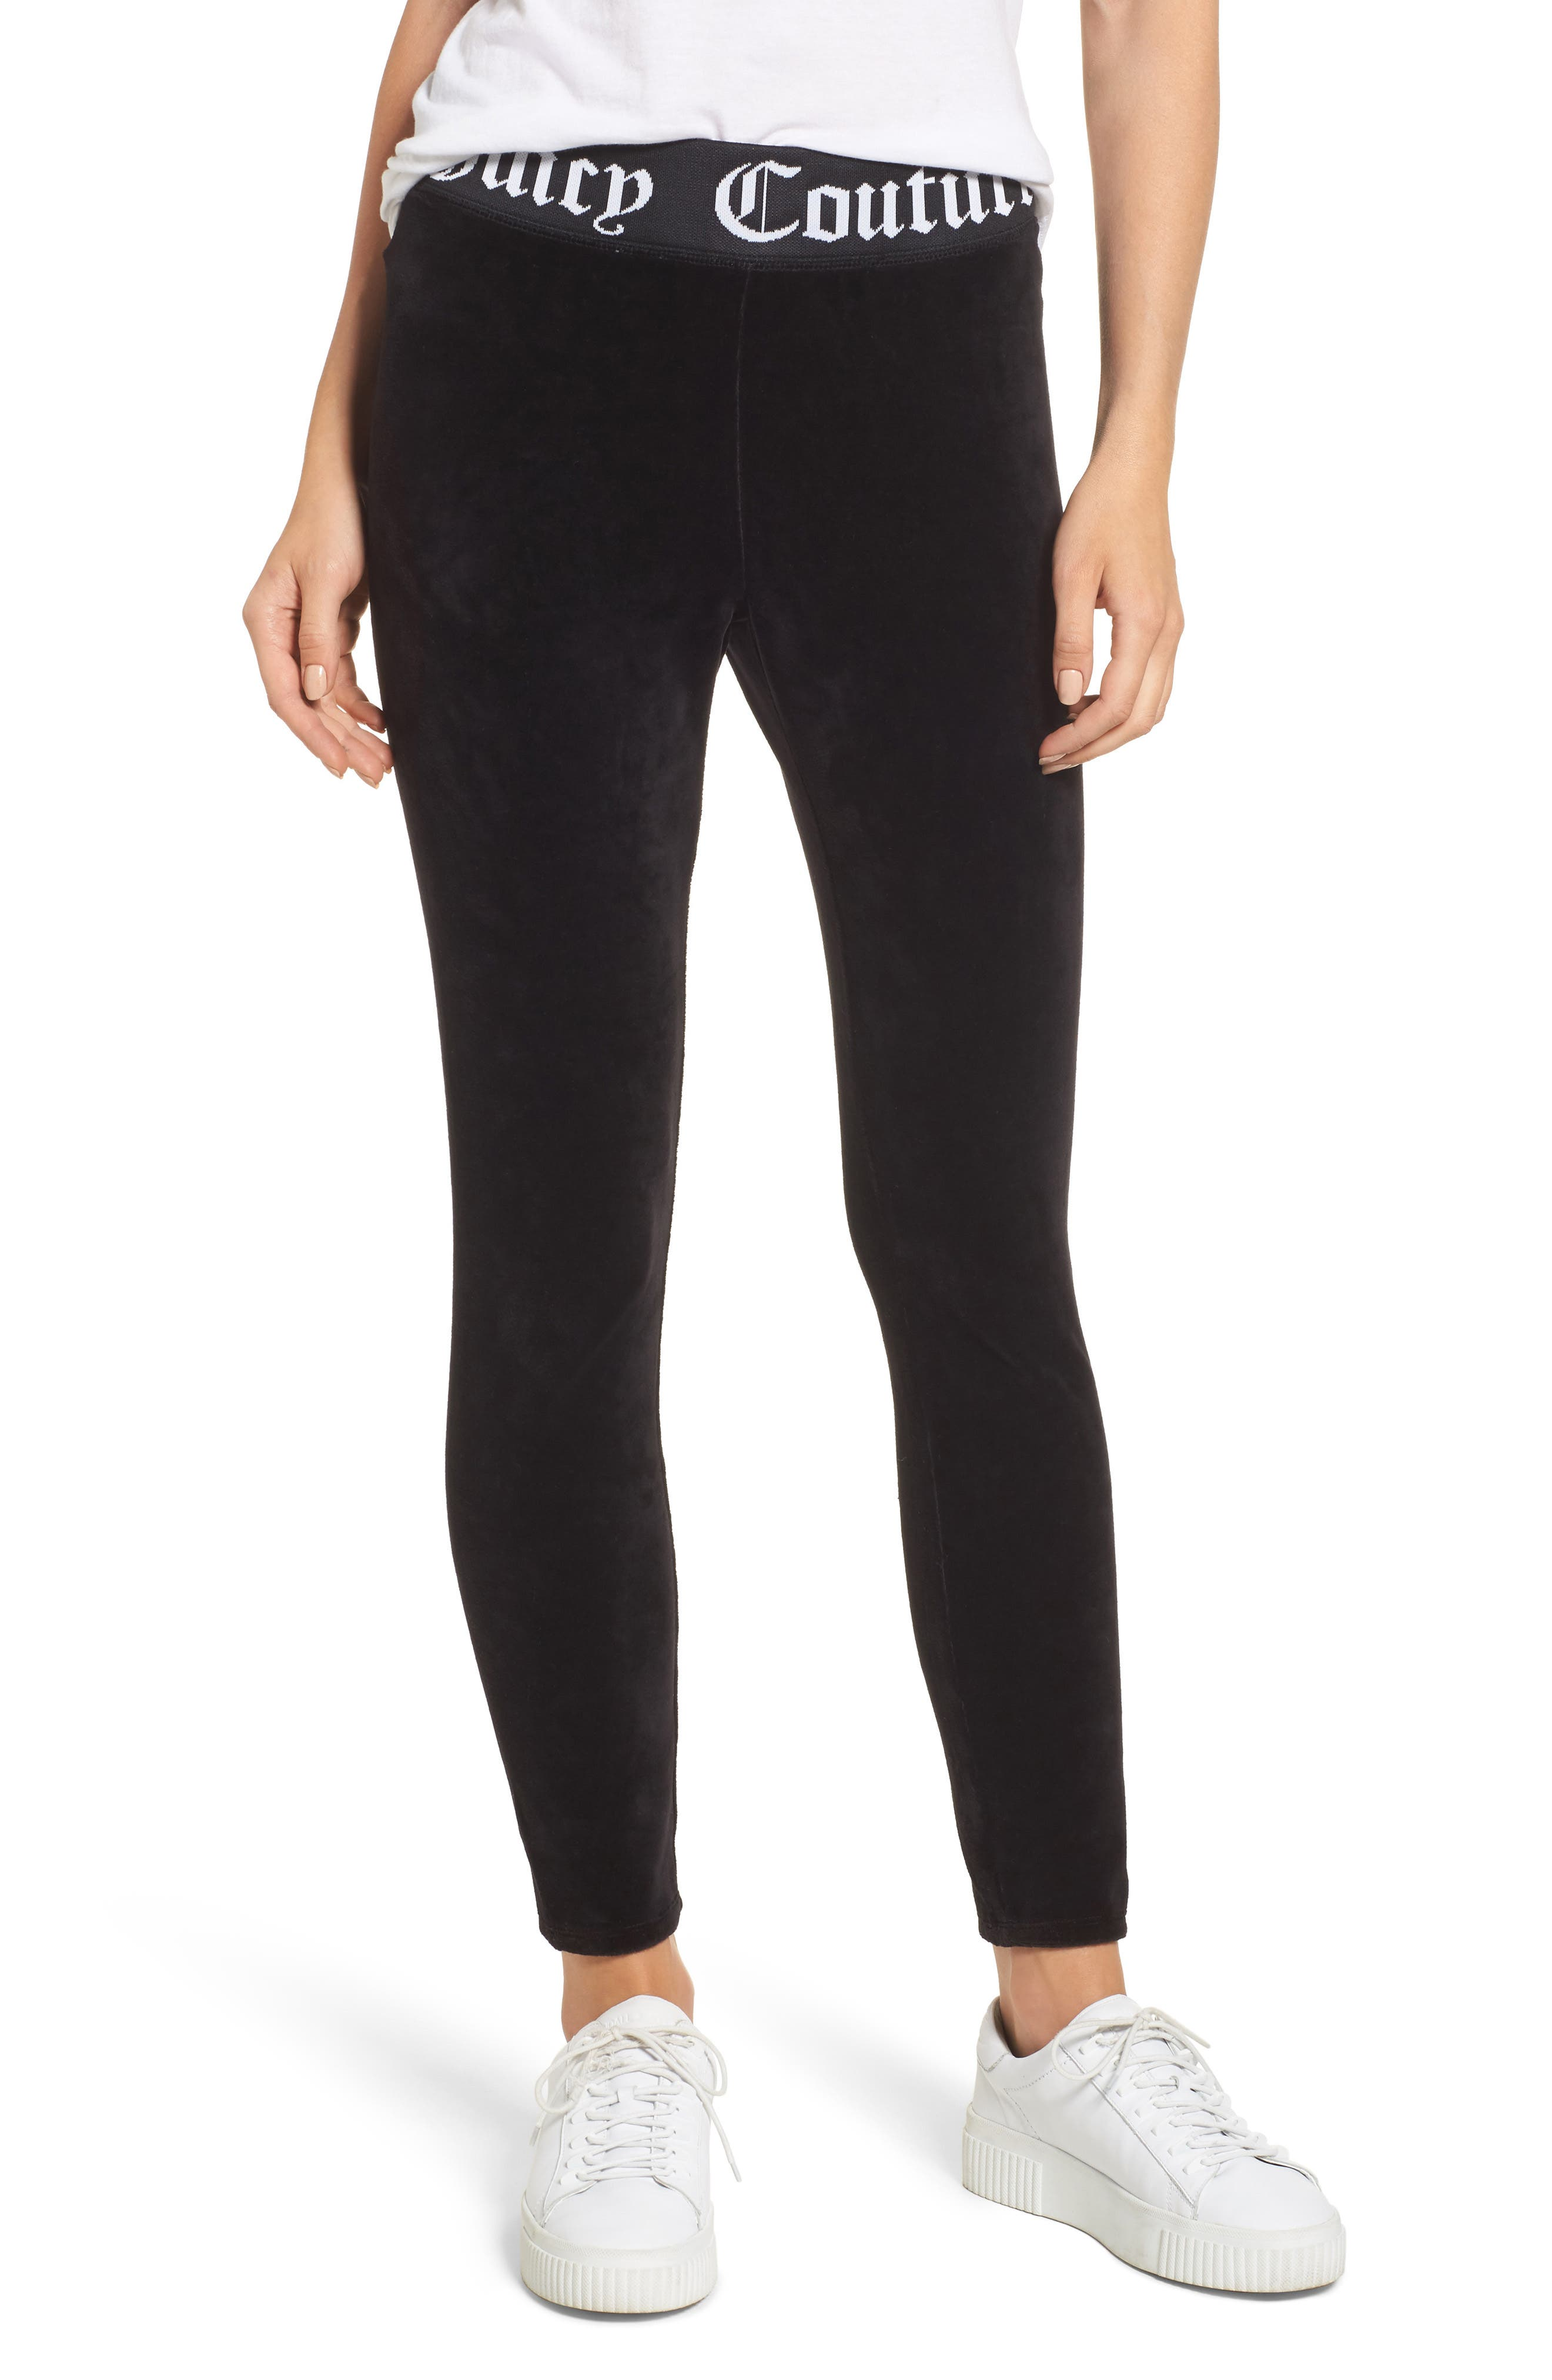 Alternate Image 1 Selected - Juicy Couture Stretch Velour Leggings